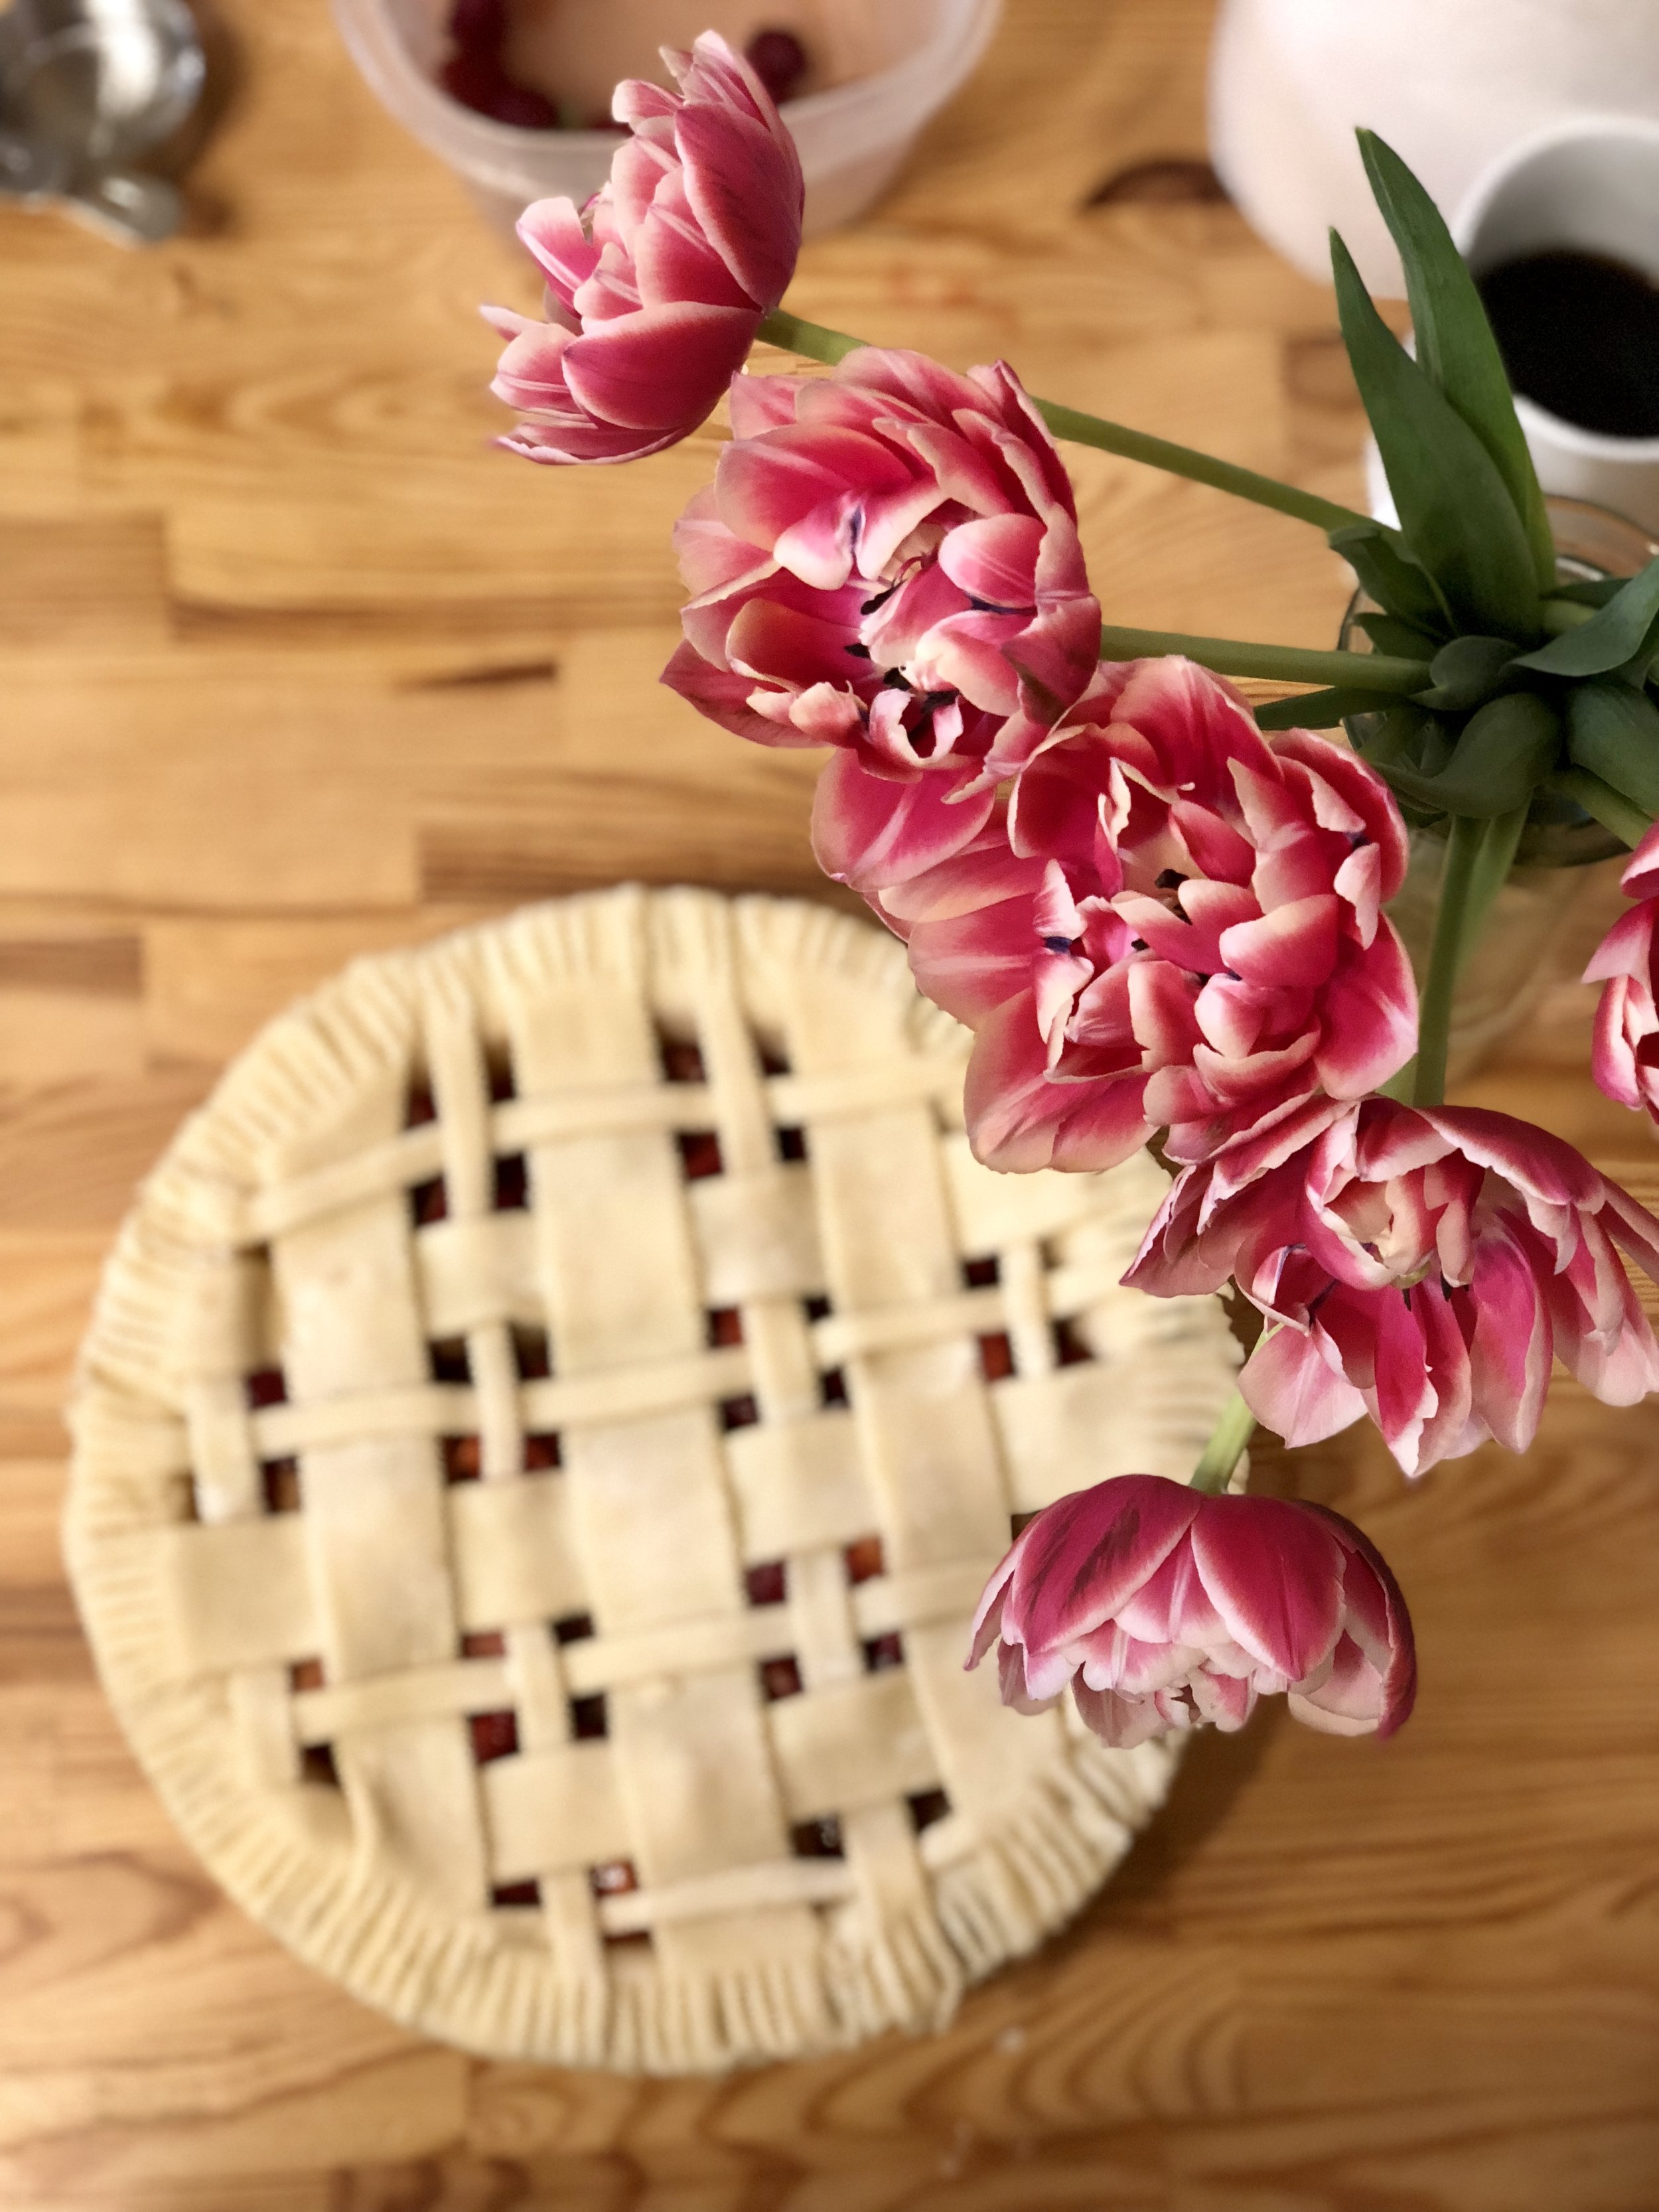 .... that turned into the most delciious (and beautiful) pie.